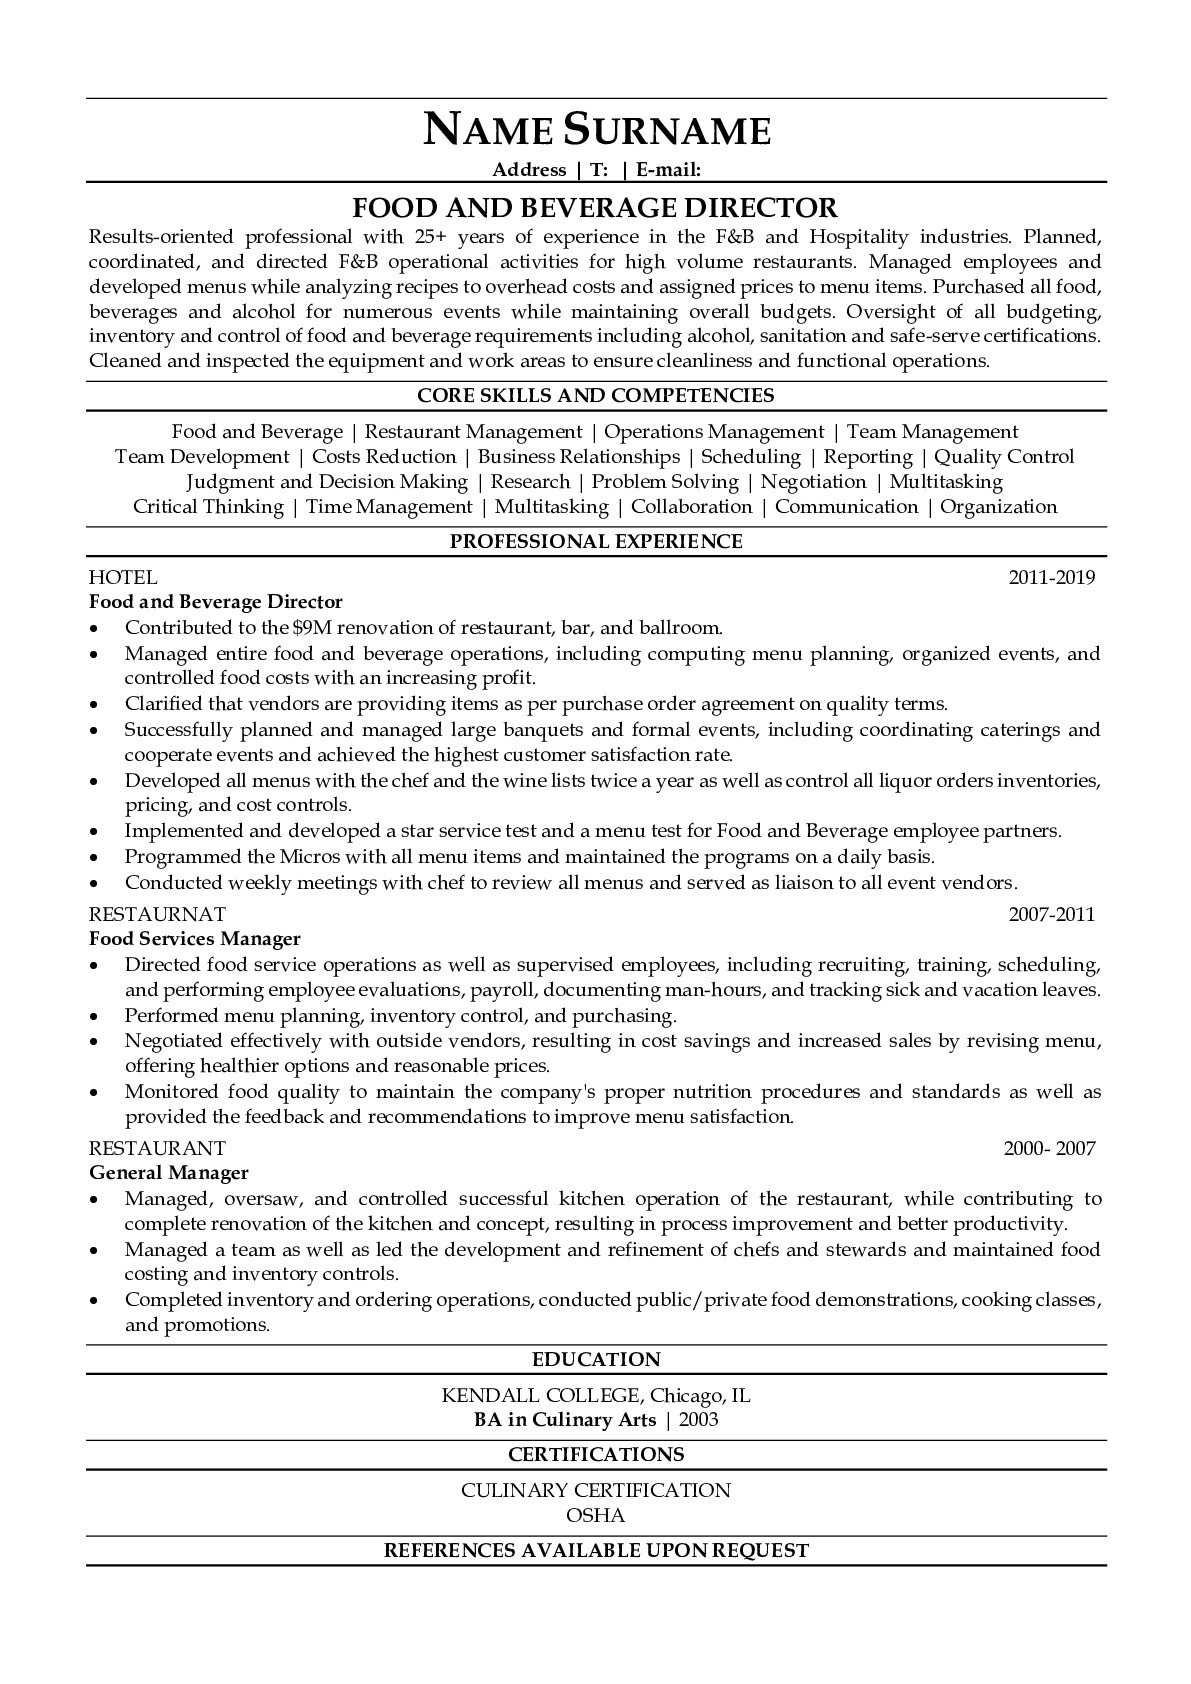 Resume Example for Food and Beverage Director